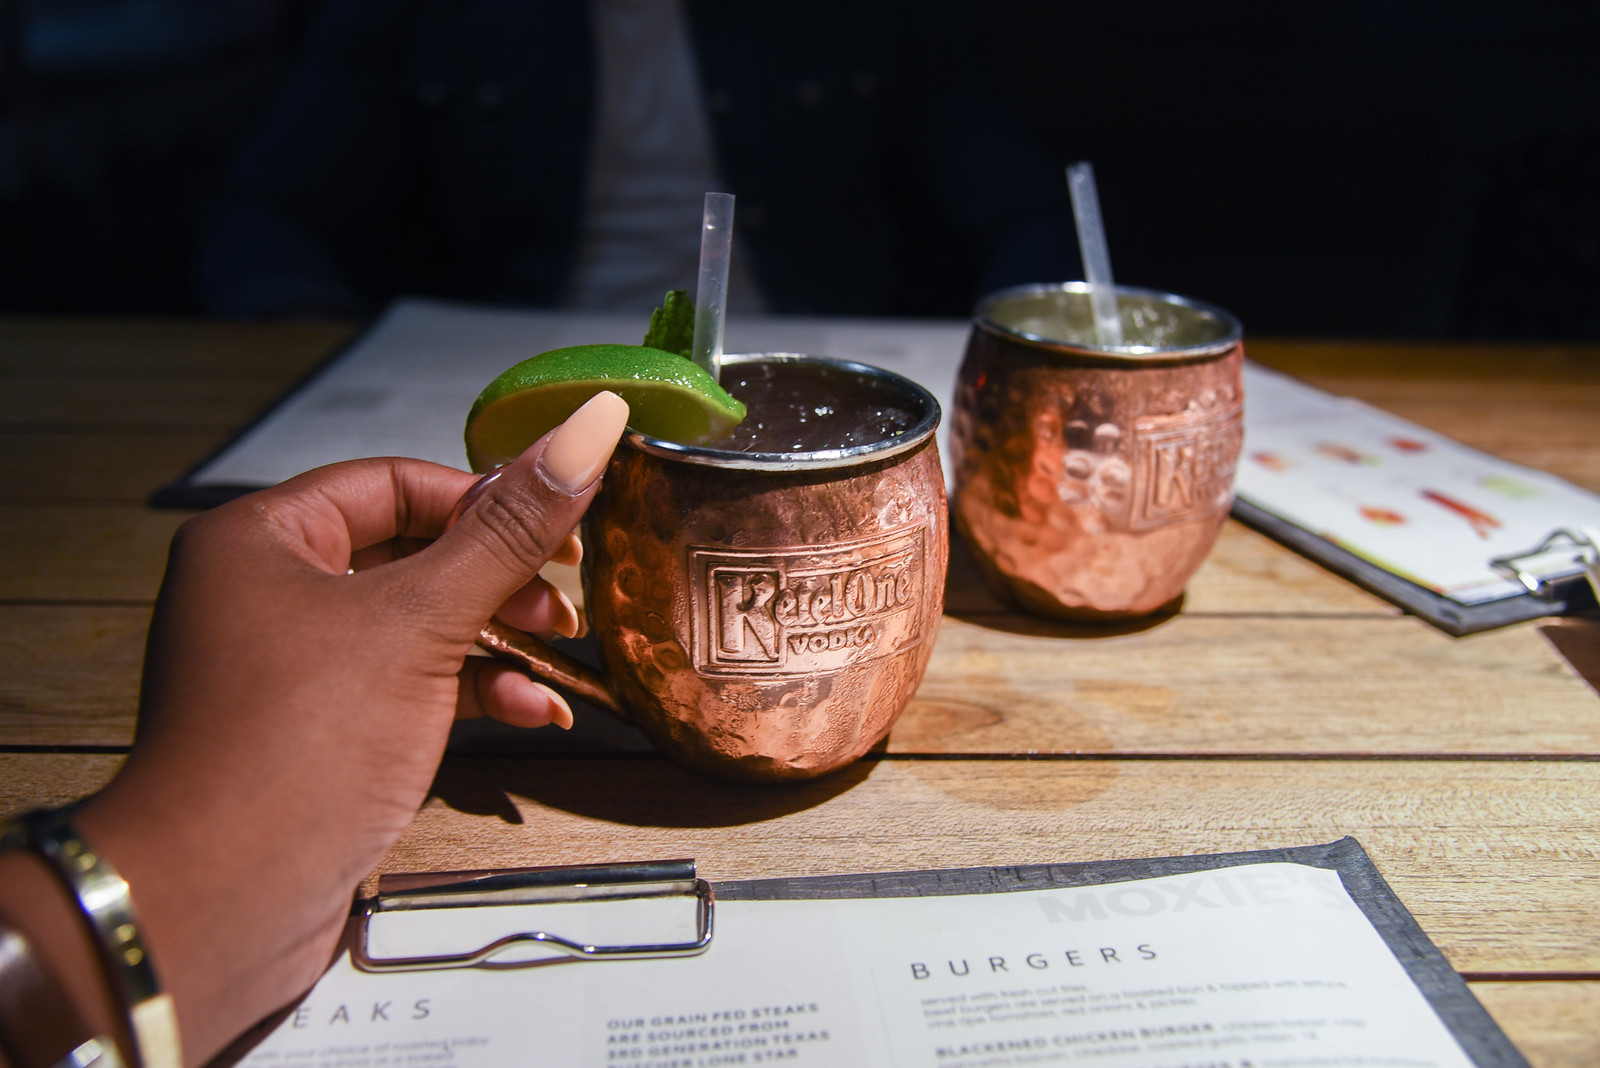 Moscow Mule toast